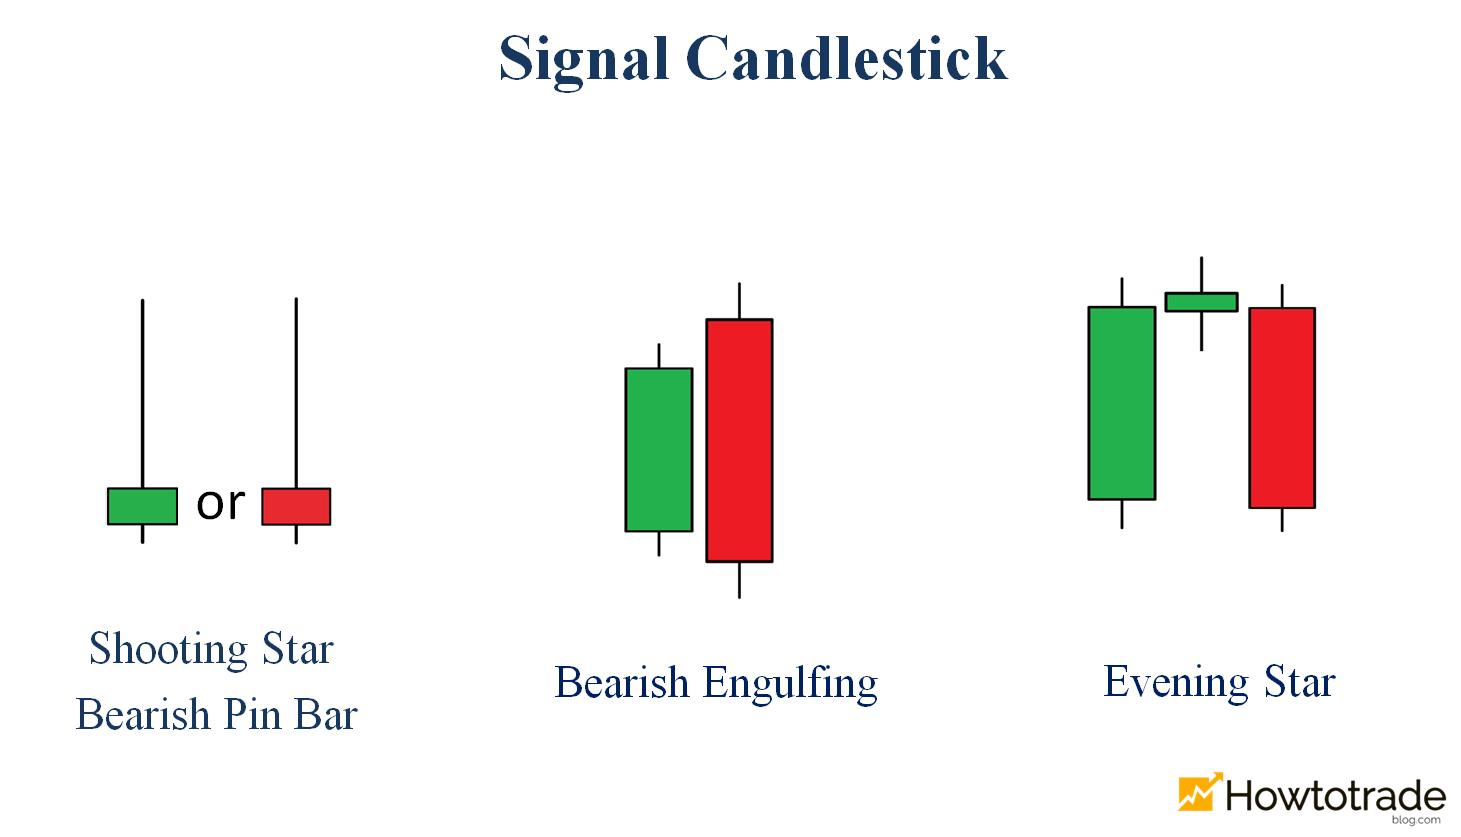 Reversal candlestick patterns from bullish to bearish